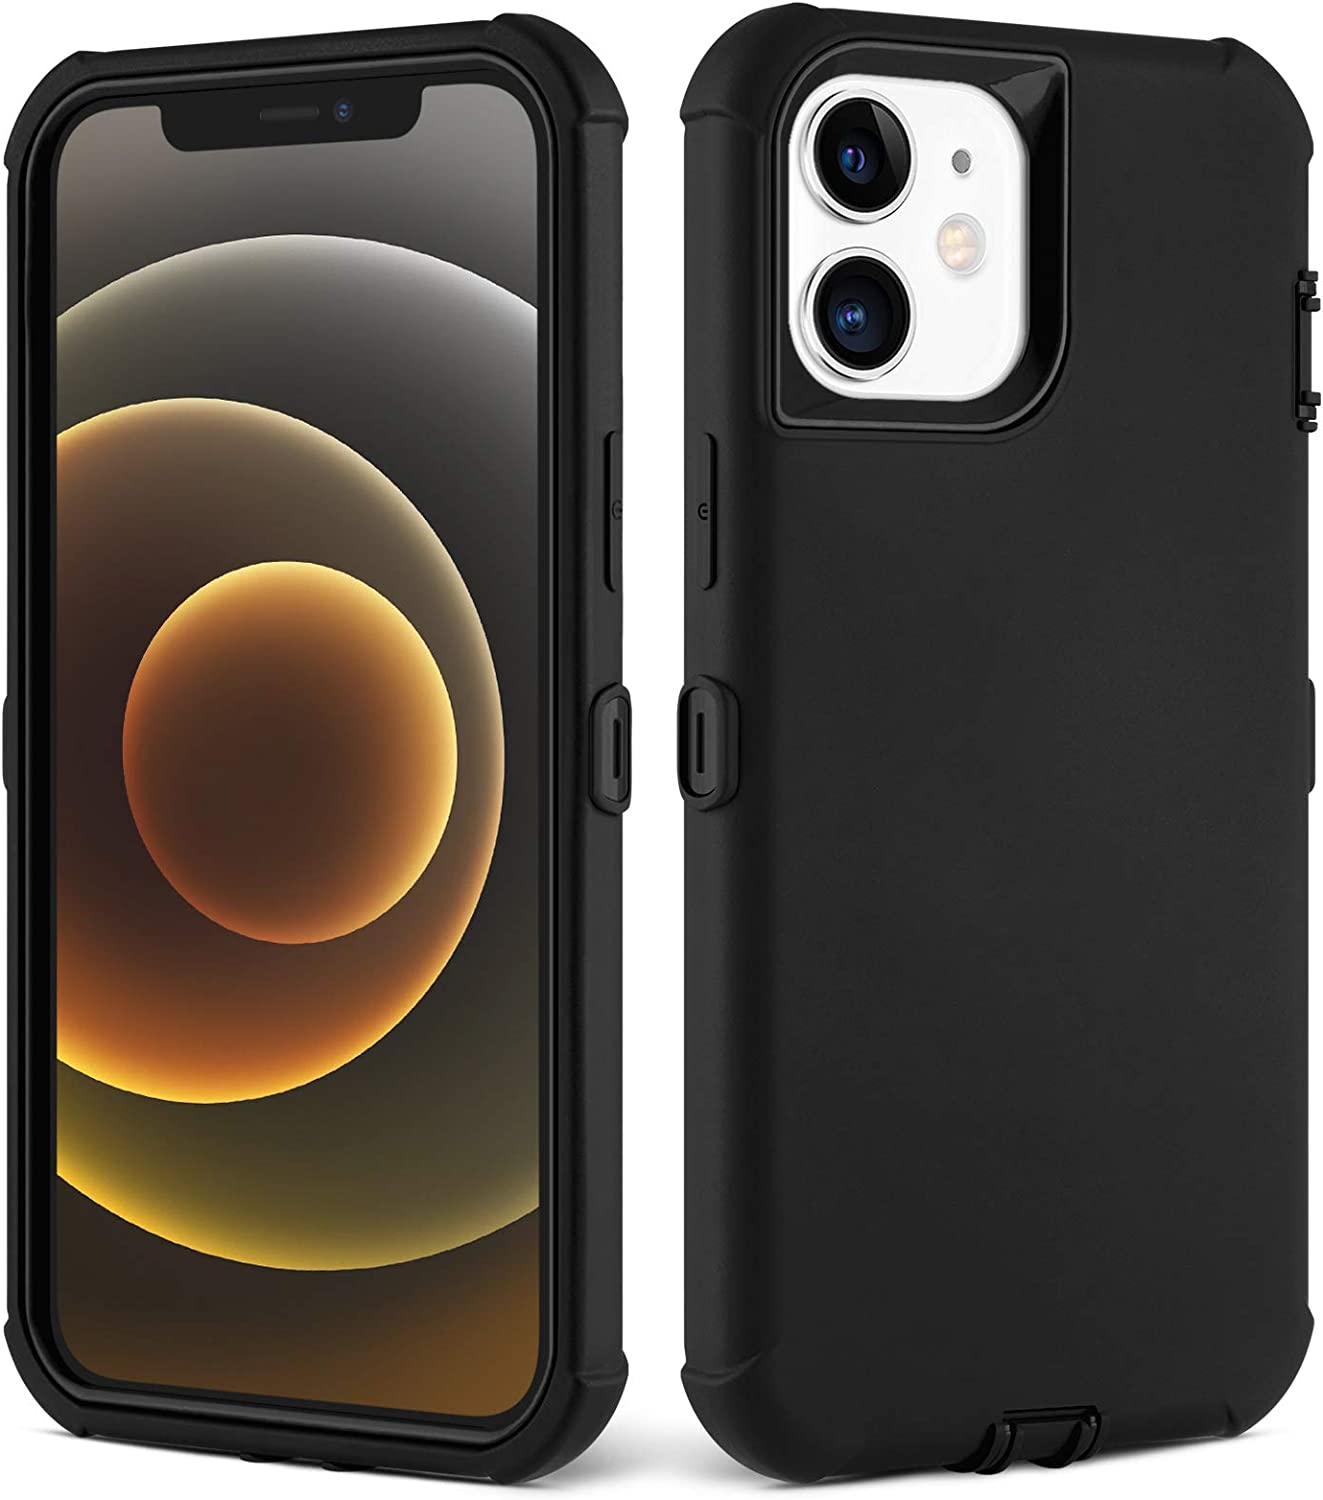 KABIBIN Compatible with iPhone 12 Mini 5.4 inch 5g 2020 Case Shockproof Heavy Duty Rubber Bumper Silicone Cover Scratch Protective Full Body Protection 3 Layer Durable Hard PC TPE Shell (Black)